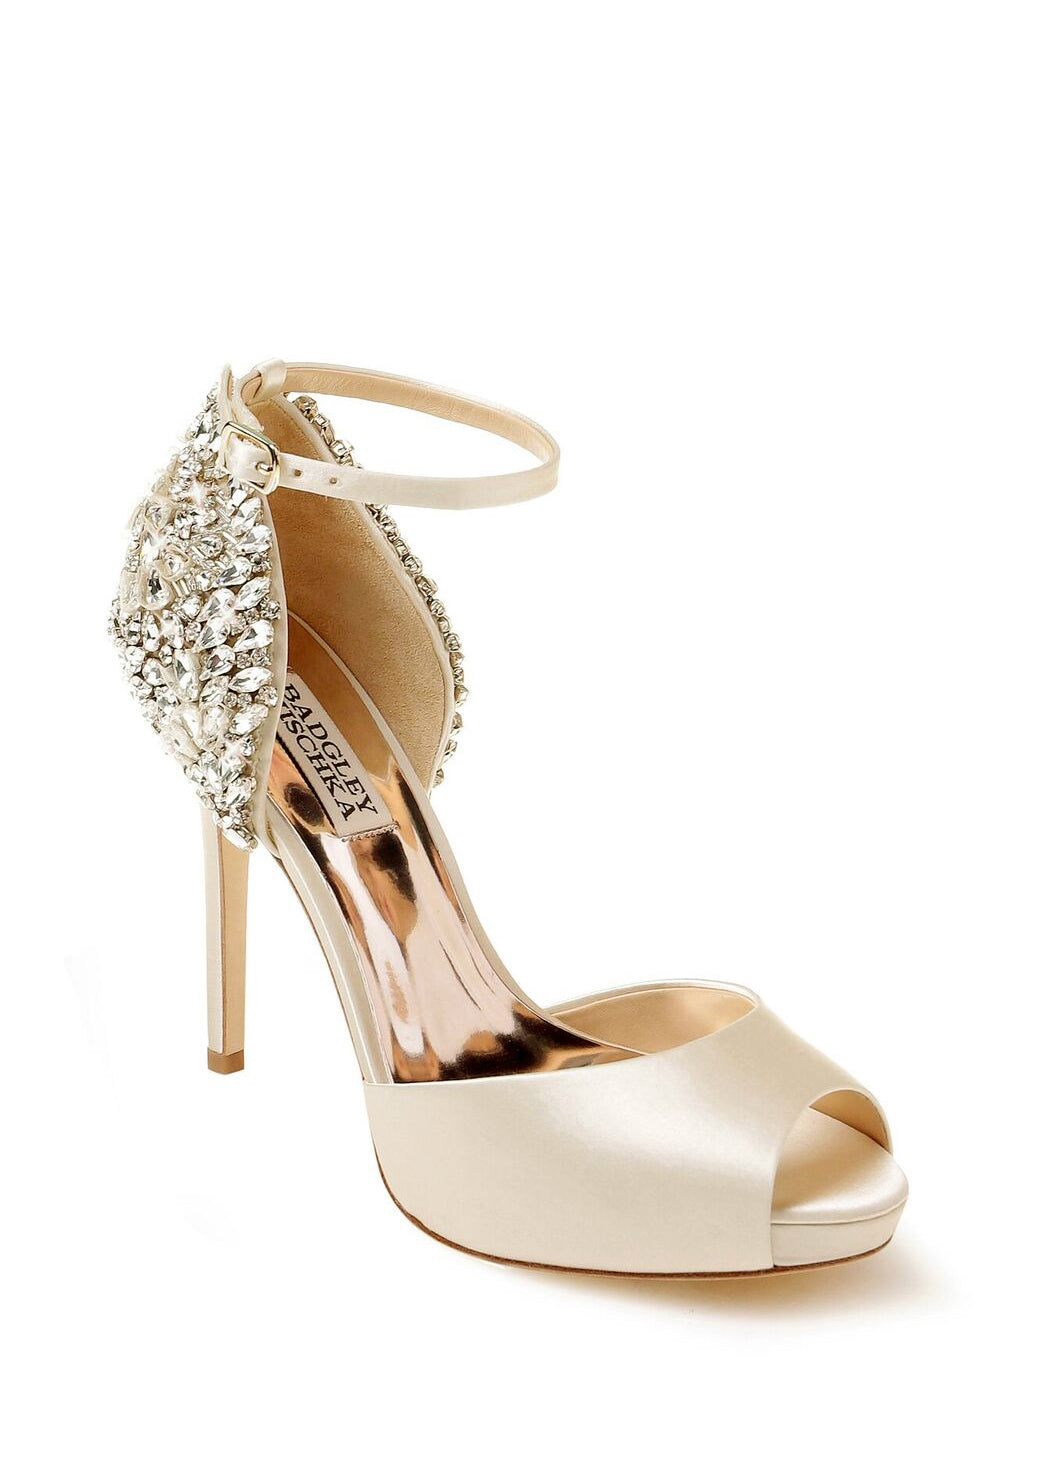 Vanity - New, Shoes, Badgley Mischka - Eternal Bridal